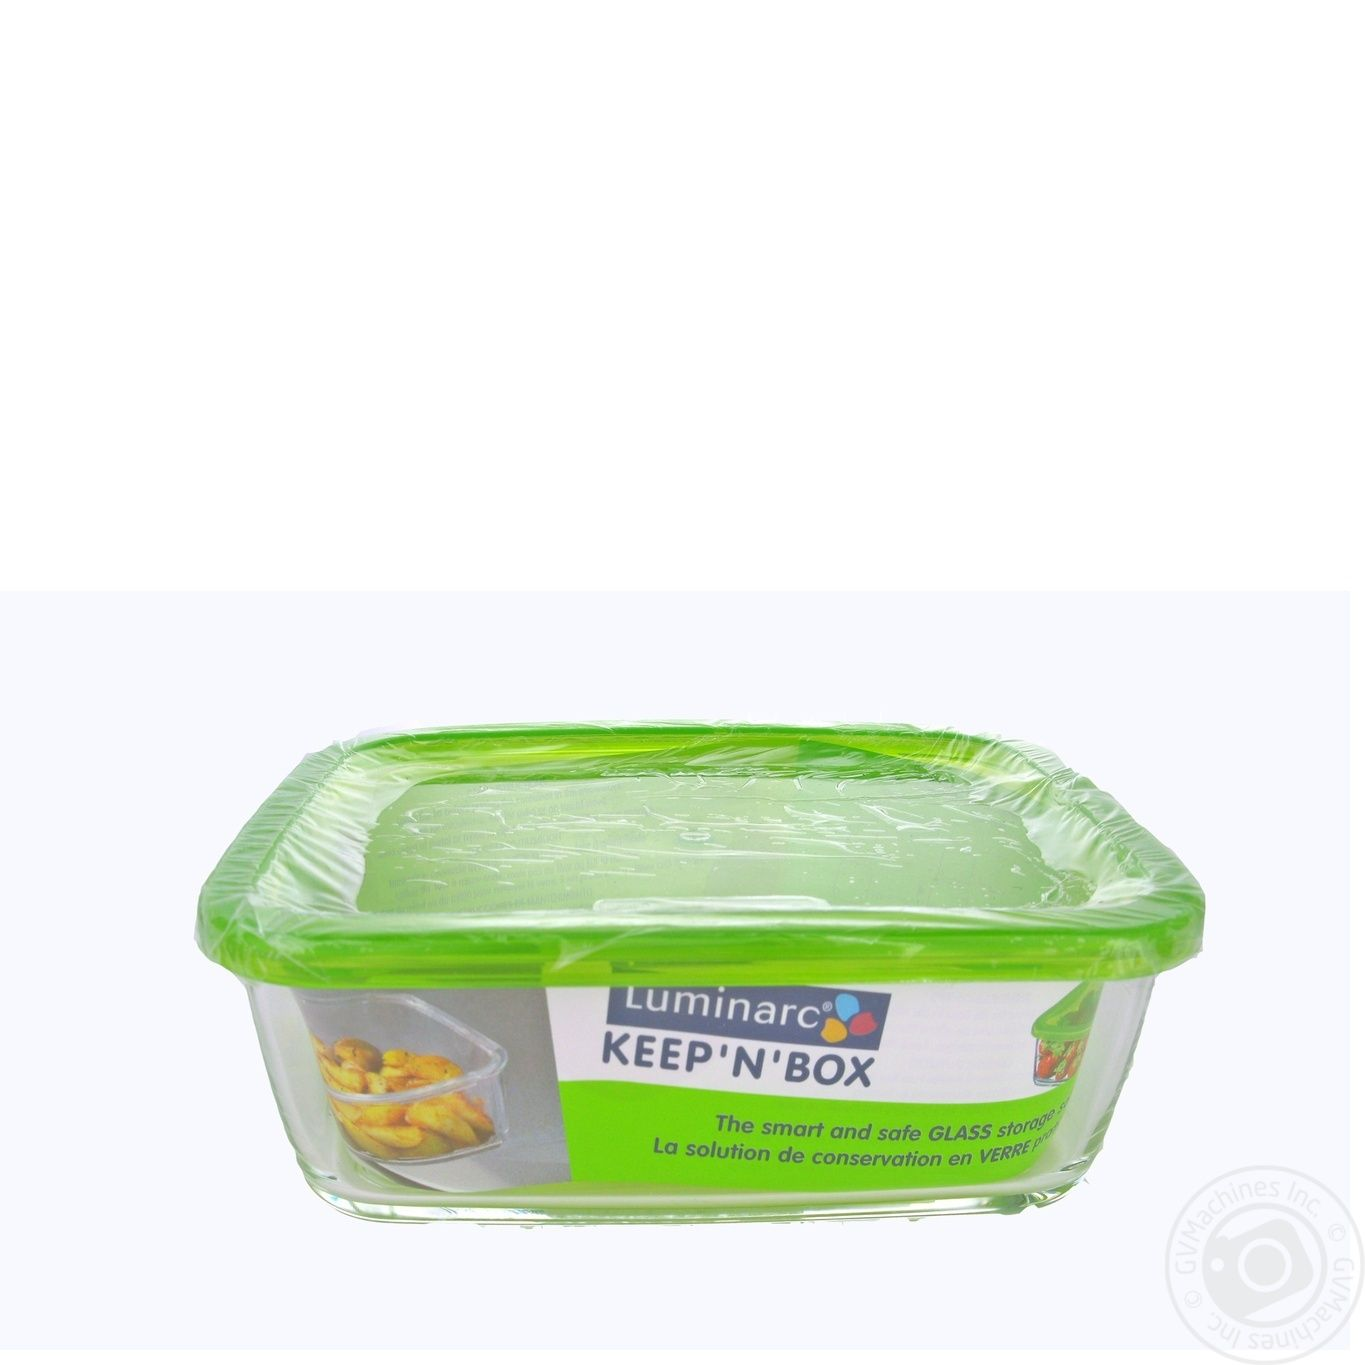 Food storage box Luminarc for food products 1160 Household